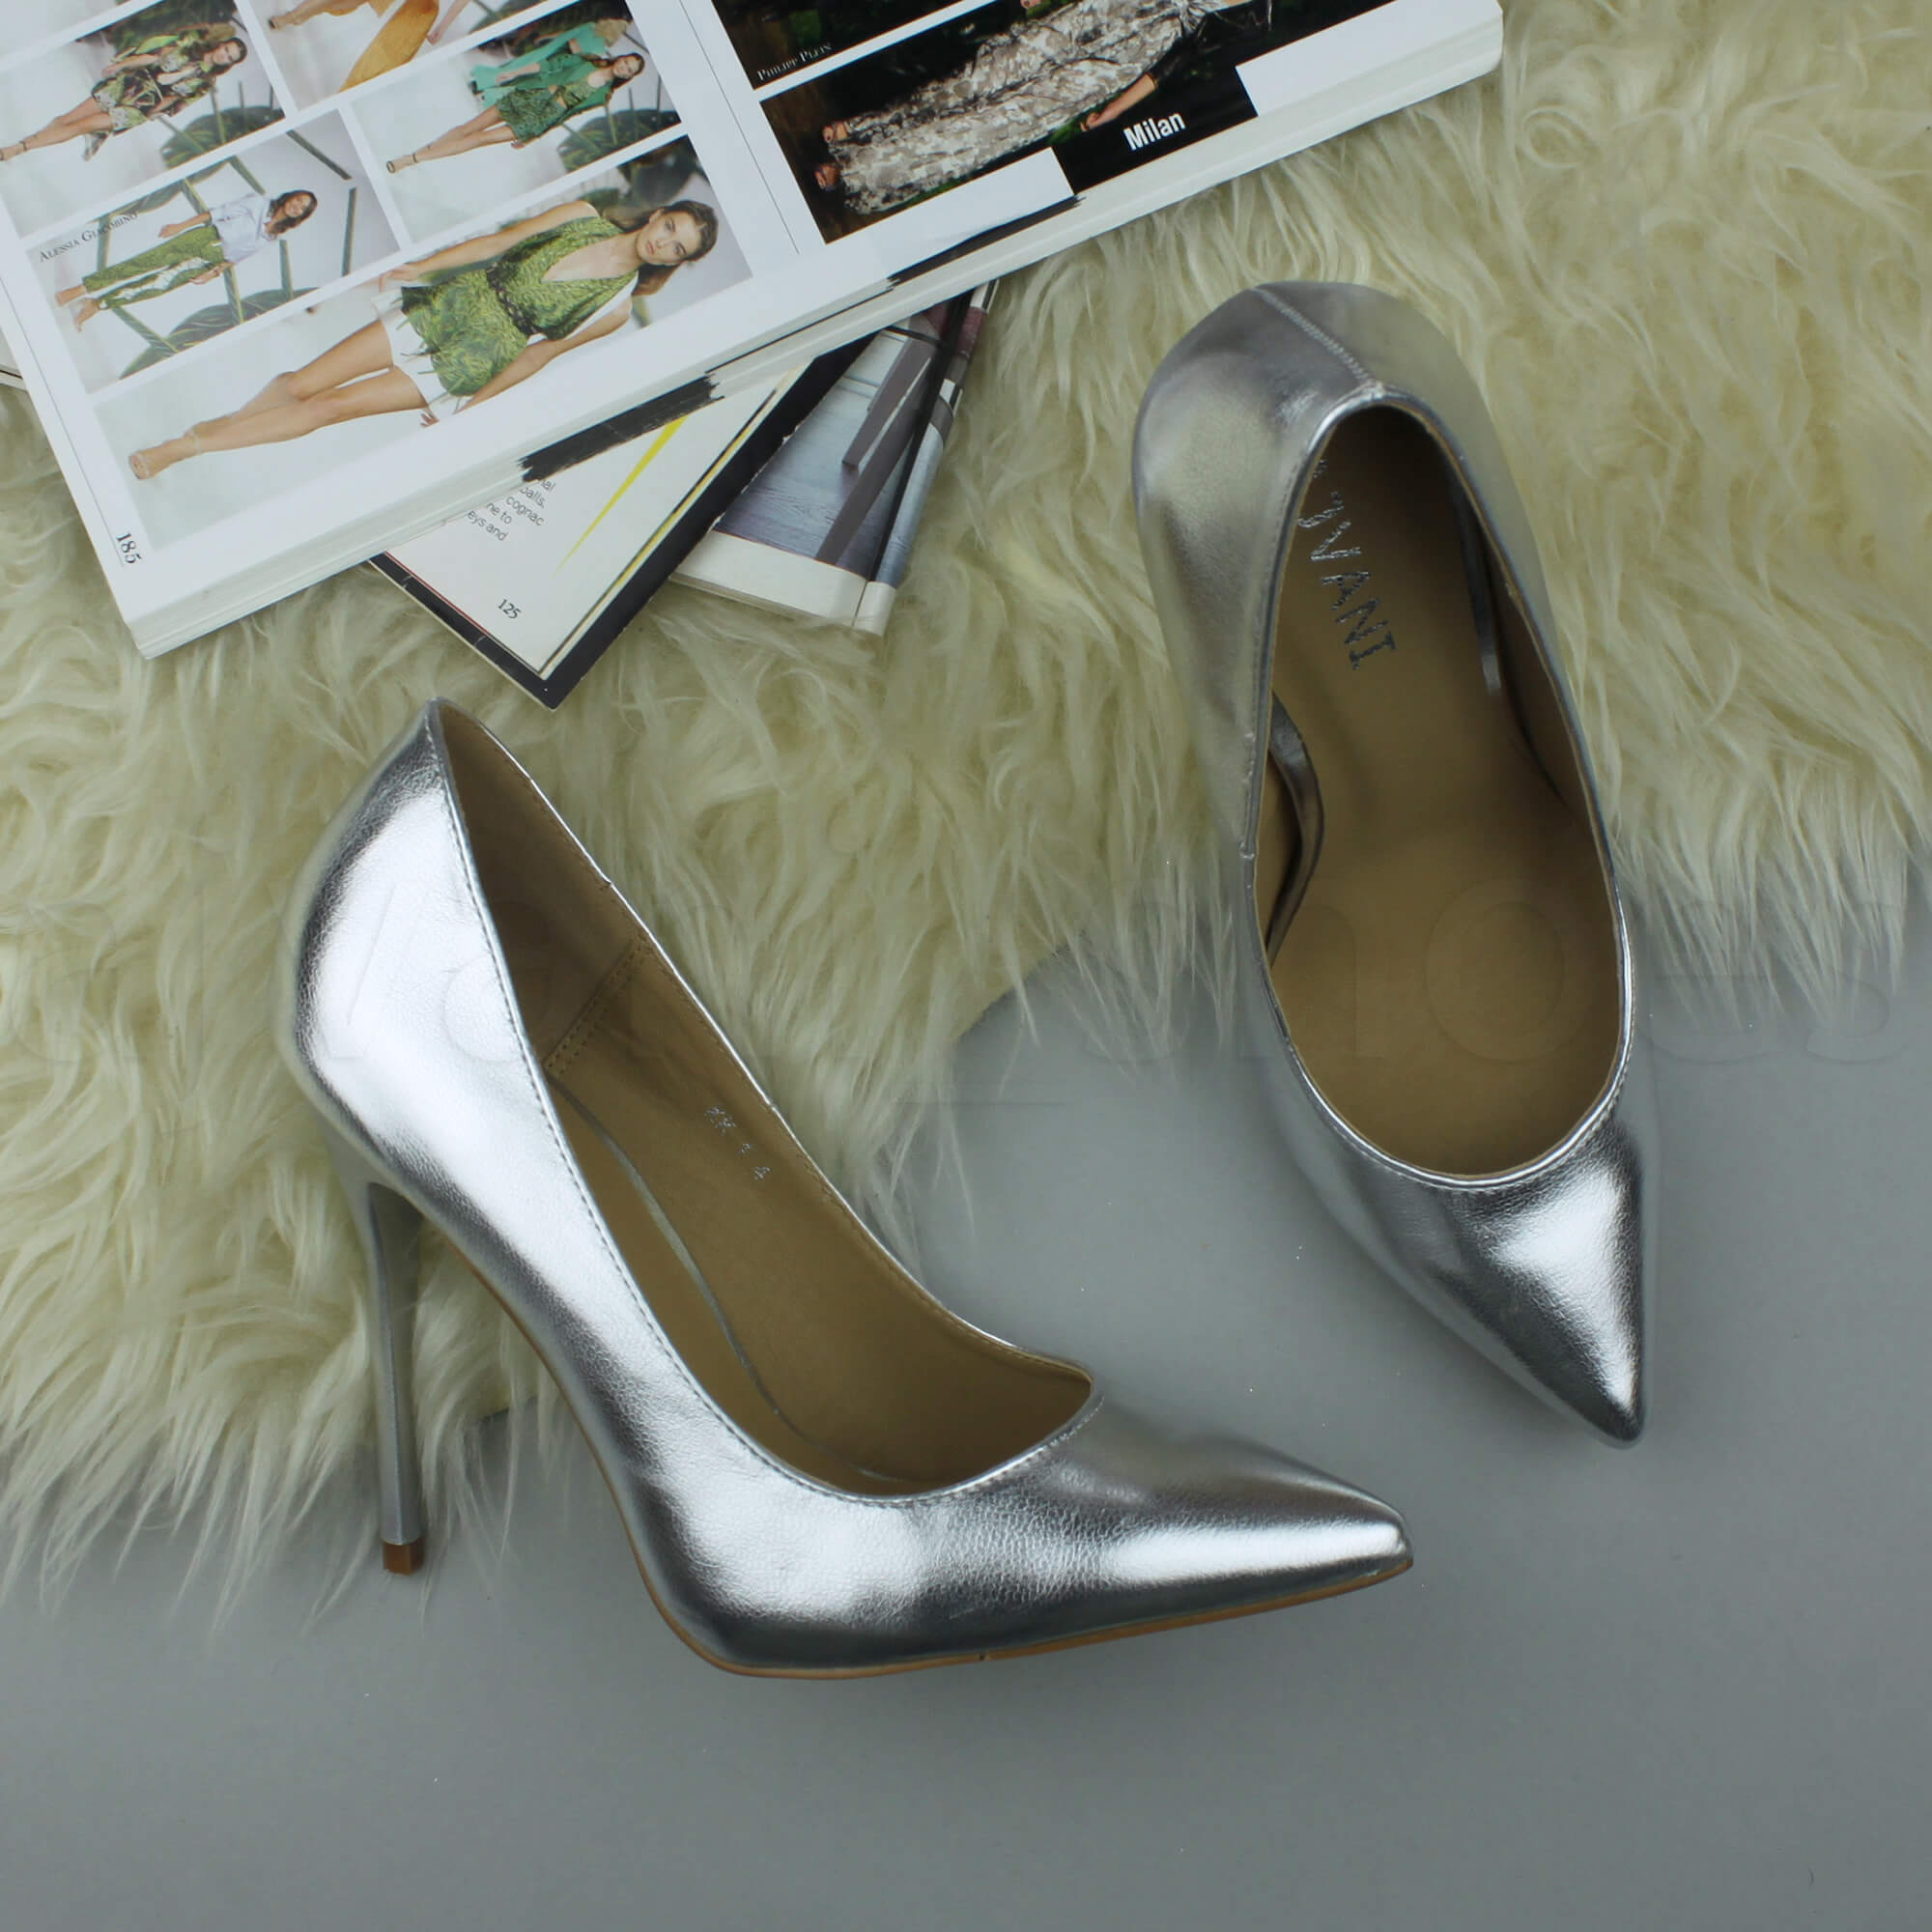 WOMENS-LADIES-HIGH-HEEL-POINTED-CONTRAST-COURT-SMART-PARTY-WORK-SHOES-PUMPS-SIZE thumbnail 195